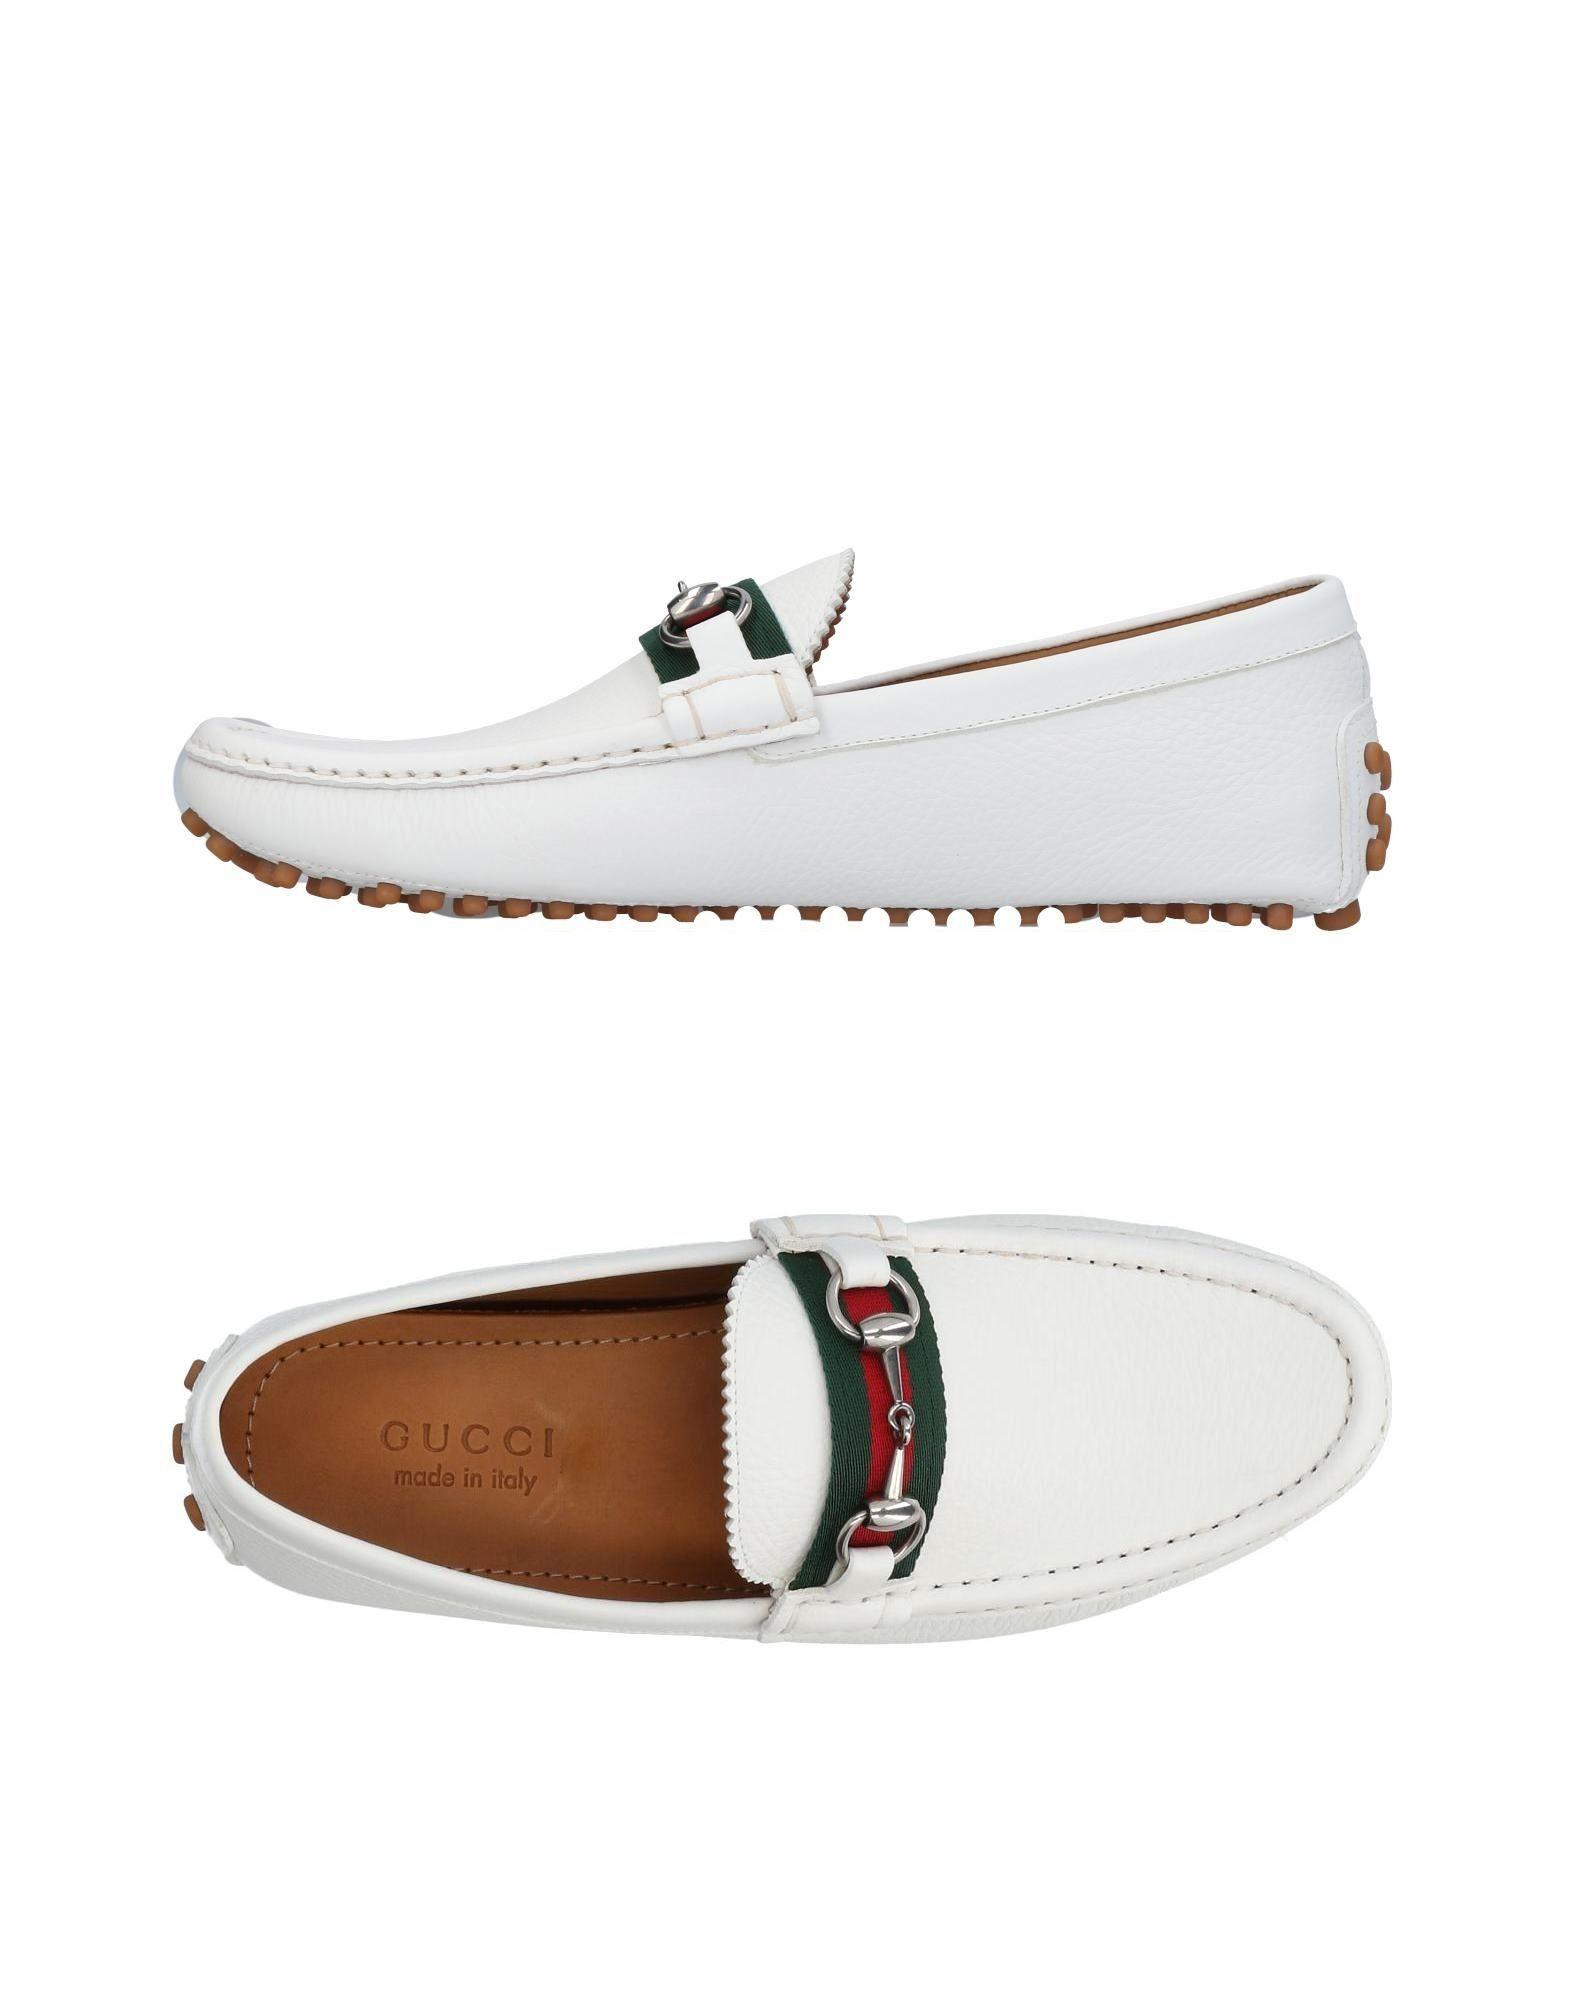 673bbb6bb03 Gucci Loafers In White